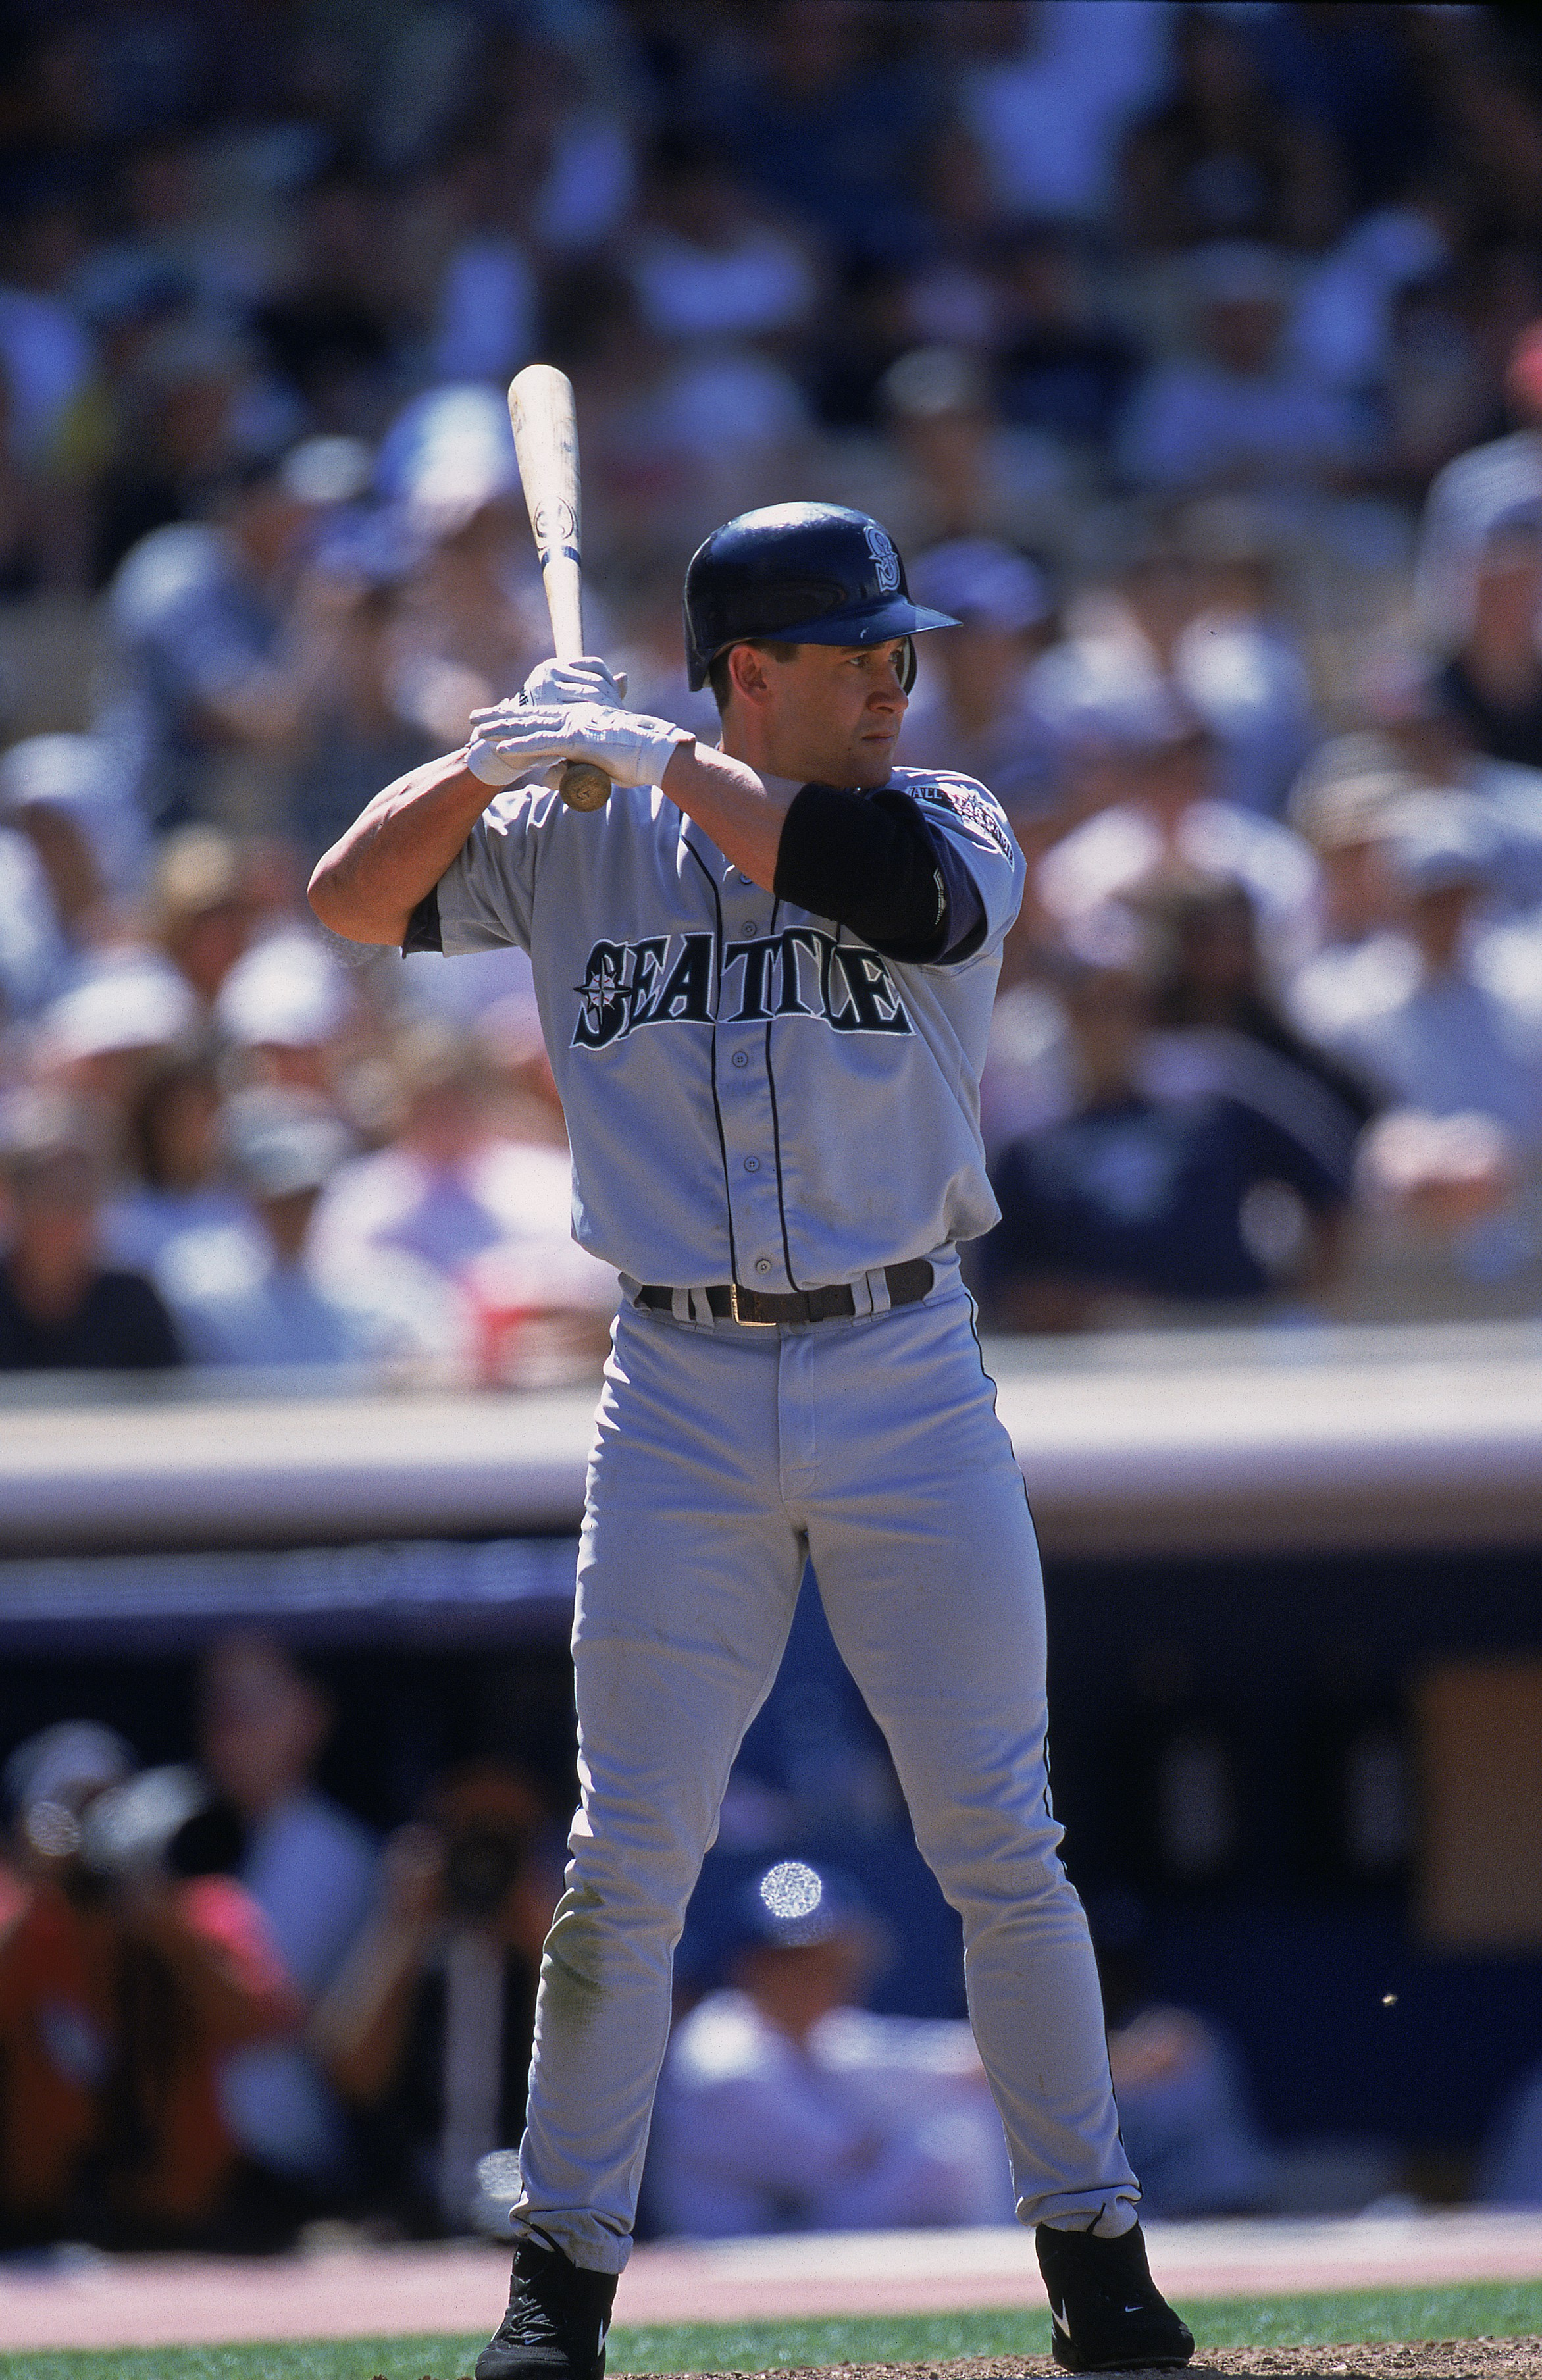 db8d383b1273 7 Jul 2001  Bret Boone  29 of the Seattle Mariners at bat during the